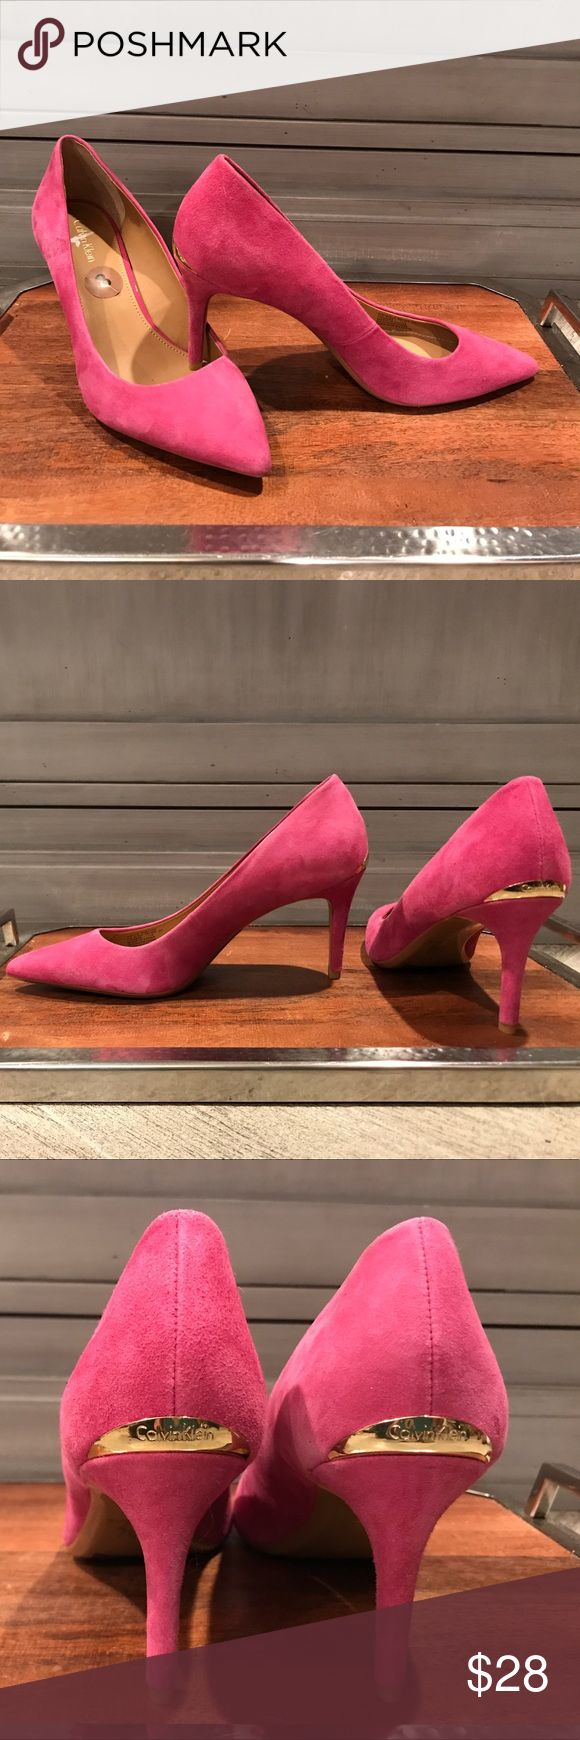 """Calvin Klein suede heels Never worn. """"Gayle"""" style. Pretty pink suede with gold Calvin Klein logo on heel. 3.5"""" heel. What seems like a flaw in the material of the shoe, but came like this from the factory. Super cute for the office. Calvin Klein Shoes Heels"""